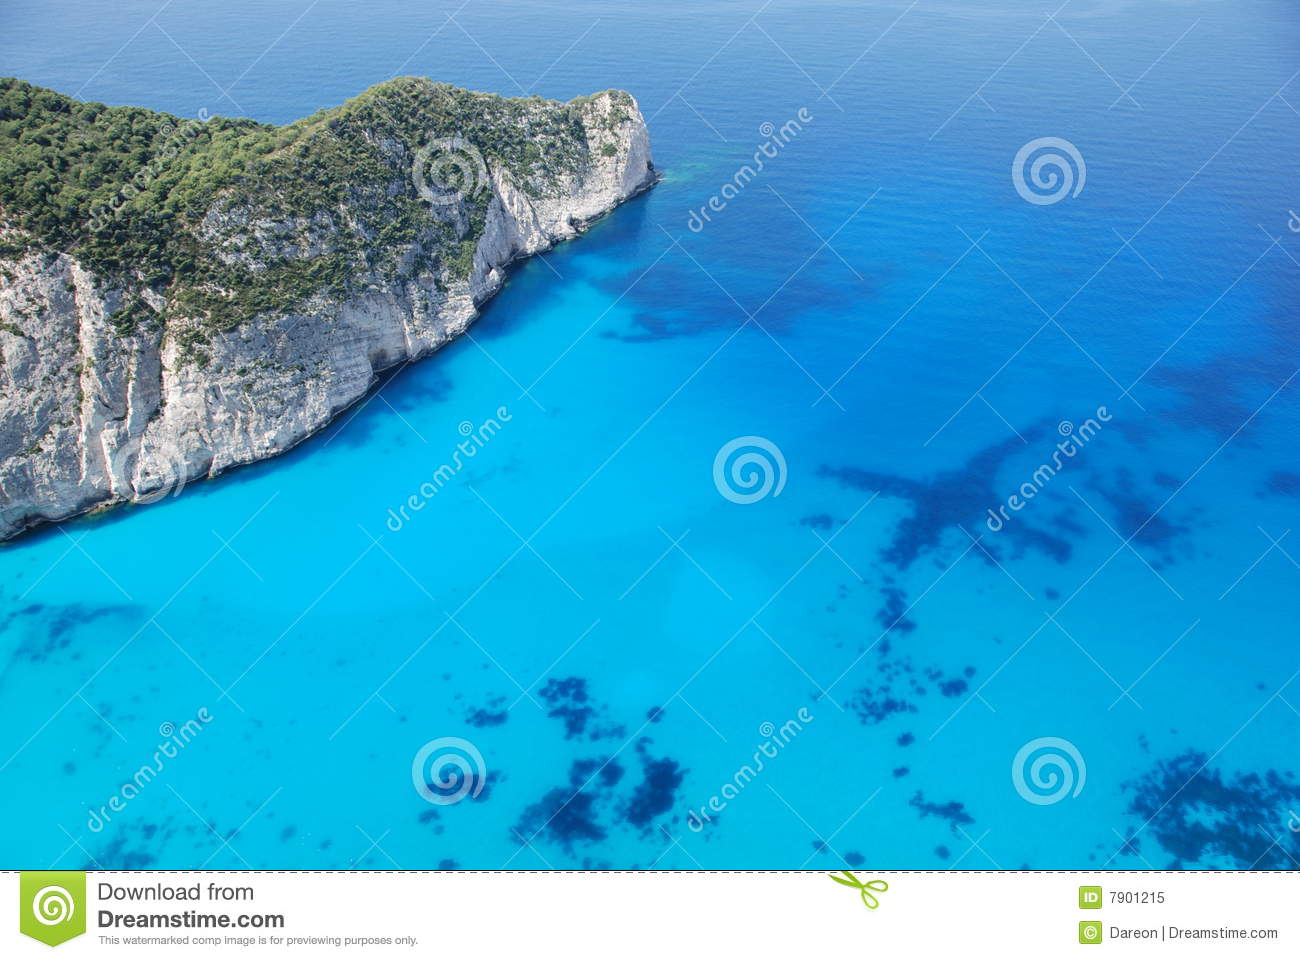 blue sea greece related-#13